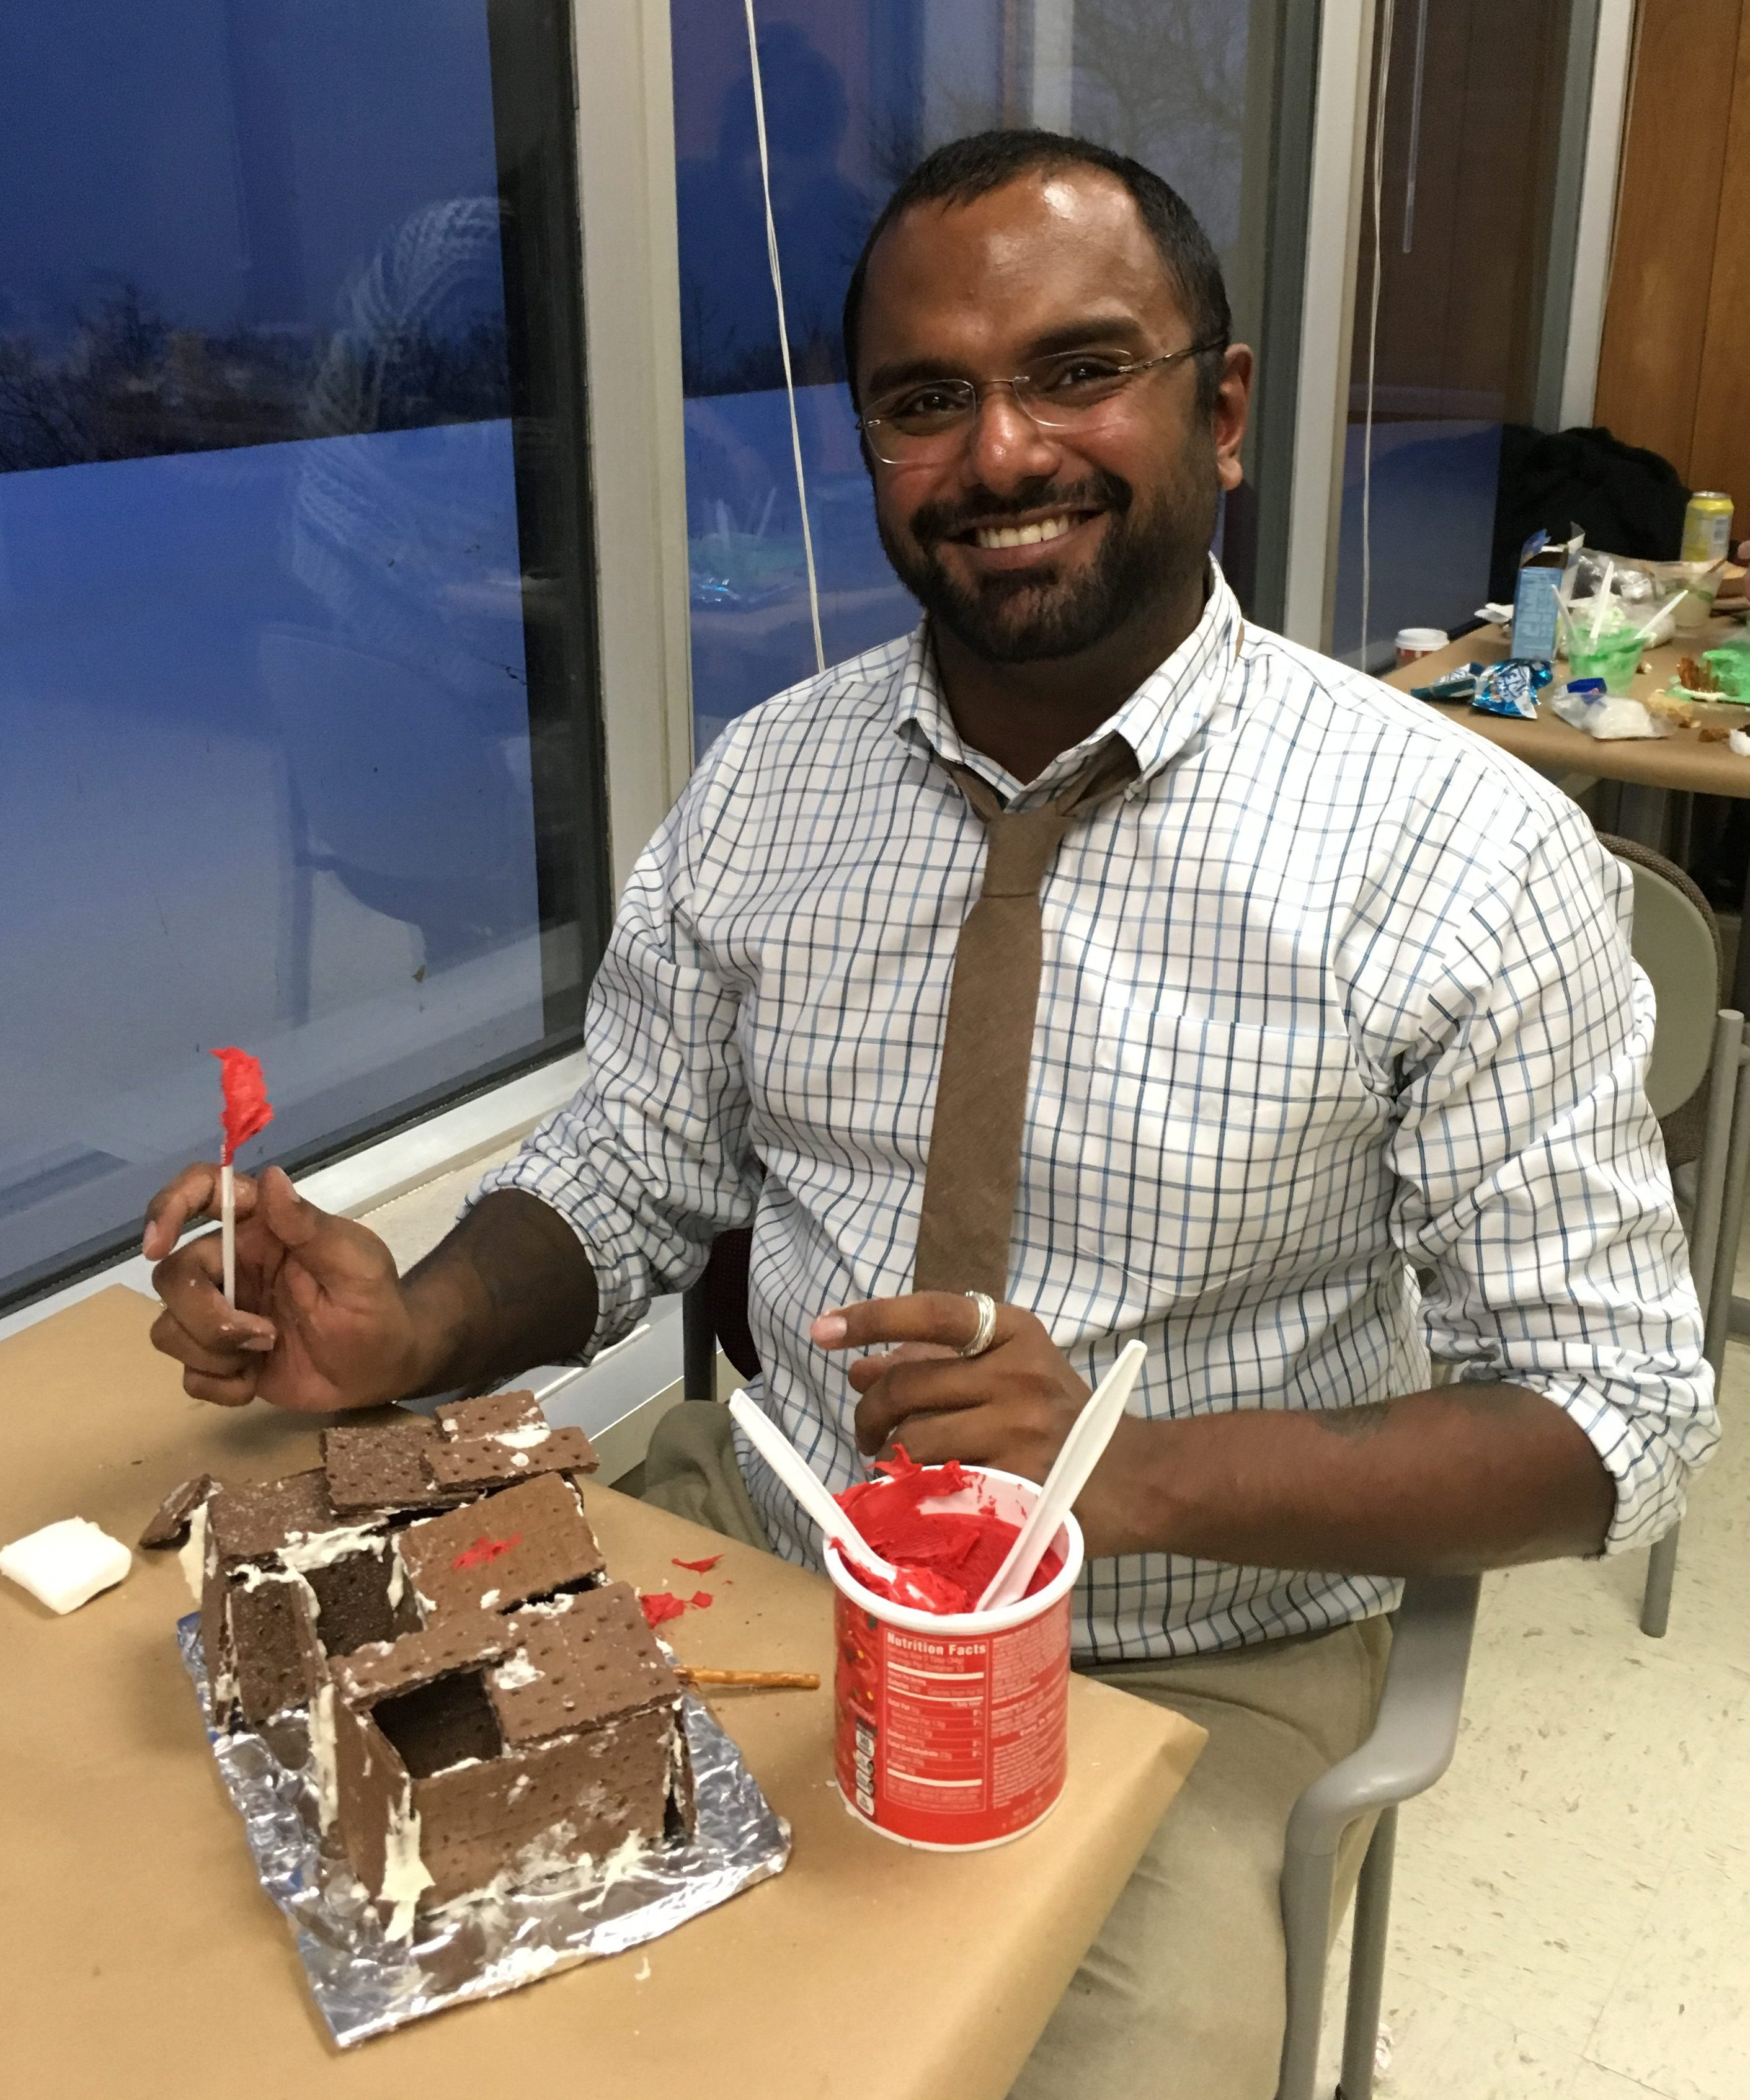 Photograph of Akshay Sarathi building a gingerbread house